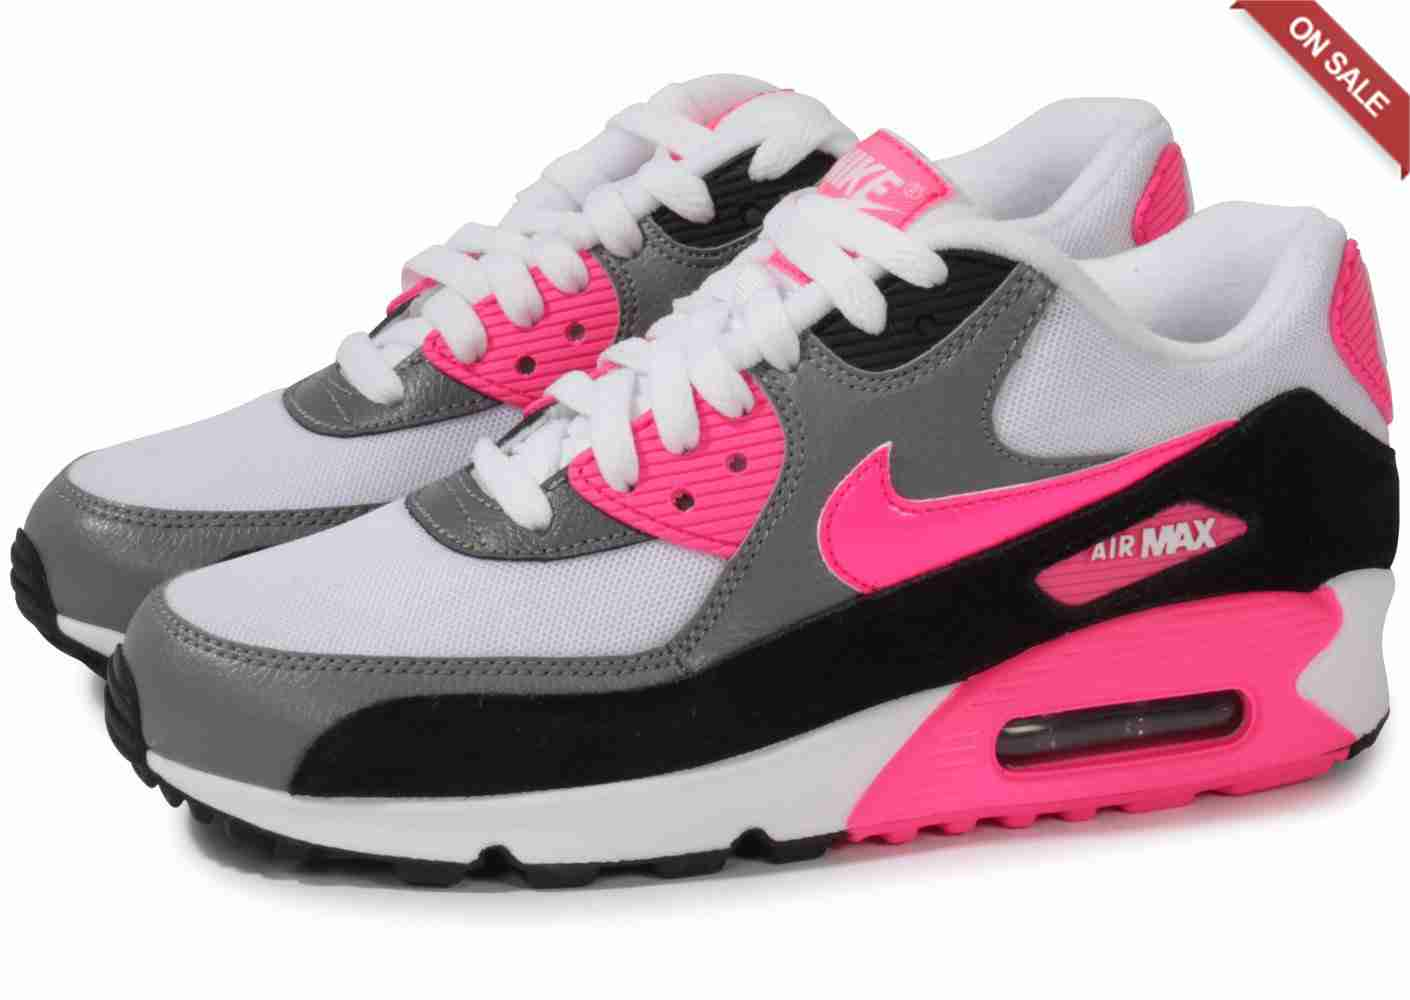 chaussure homme nike air max 2018 taille 41